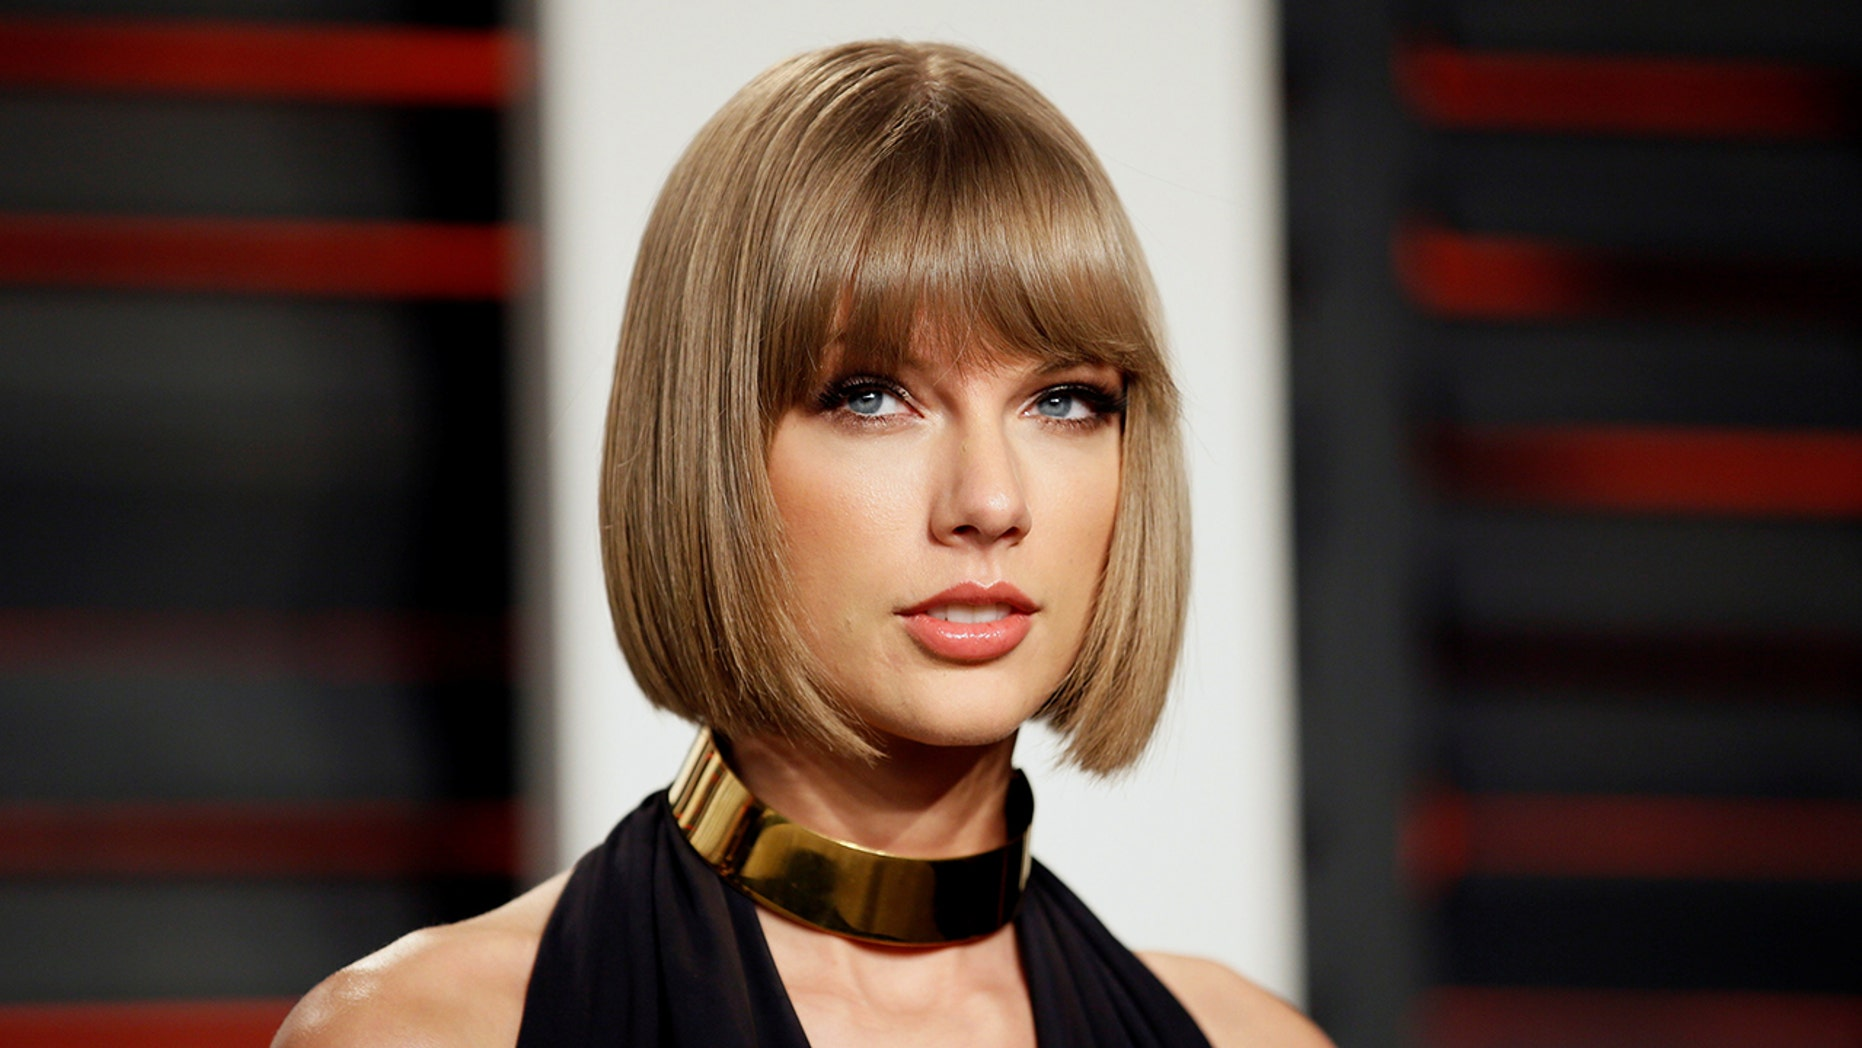 The radio DJ who groped Taylor Swift, pictured, is back behind the mic.